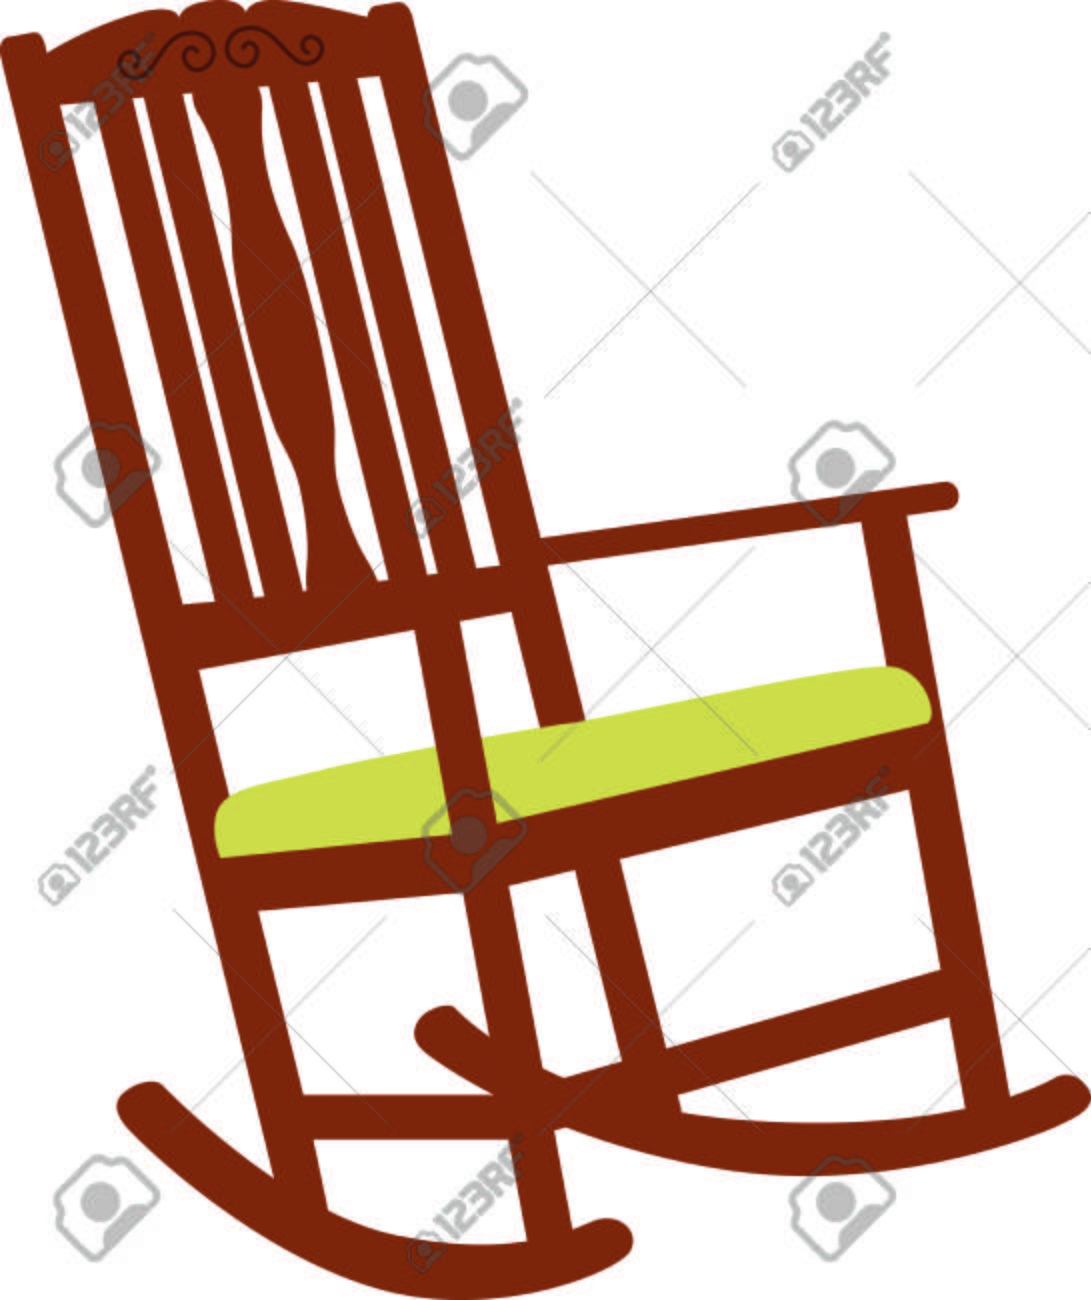 Wooden Rocking Chair With A Green Cushion A Perfect Design For